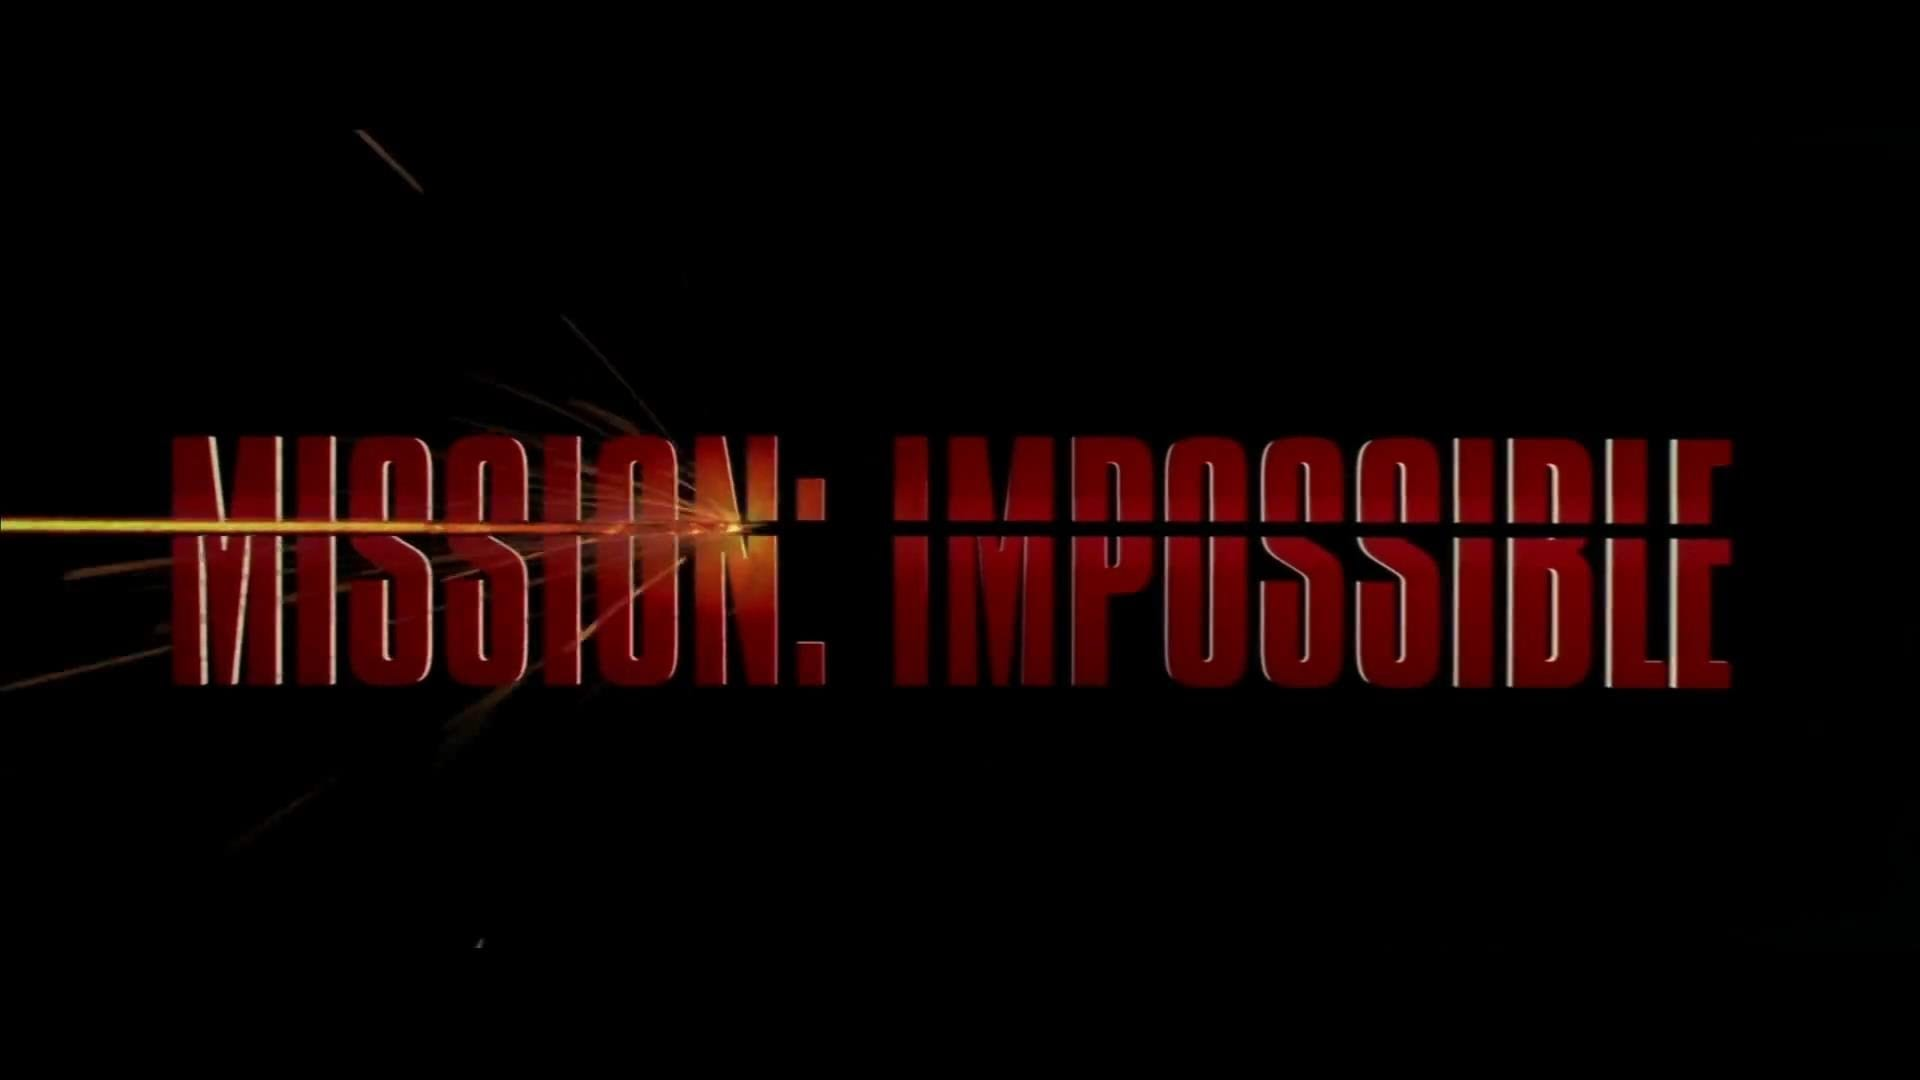 Mission impossible 6 release date in Melbourne